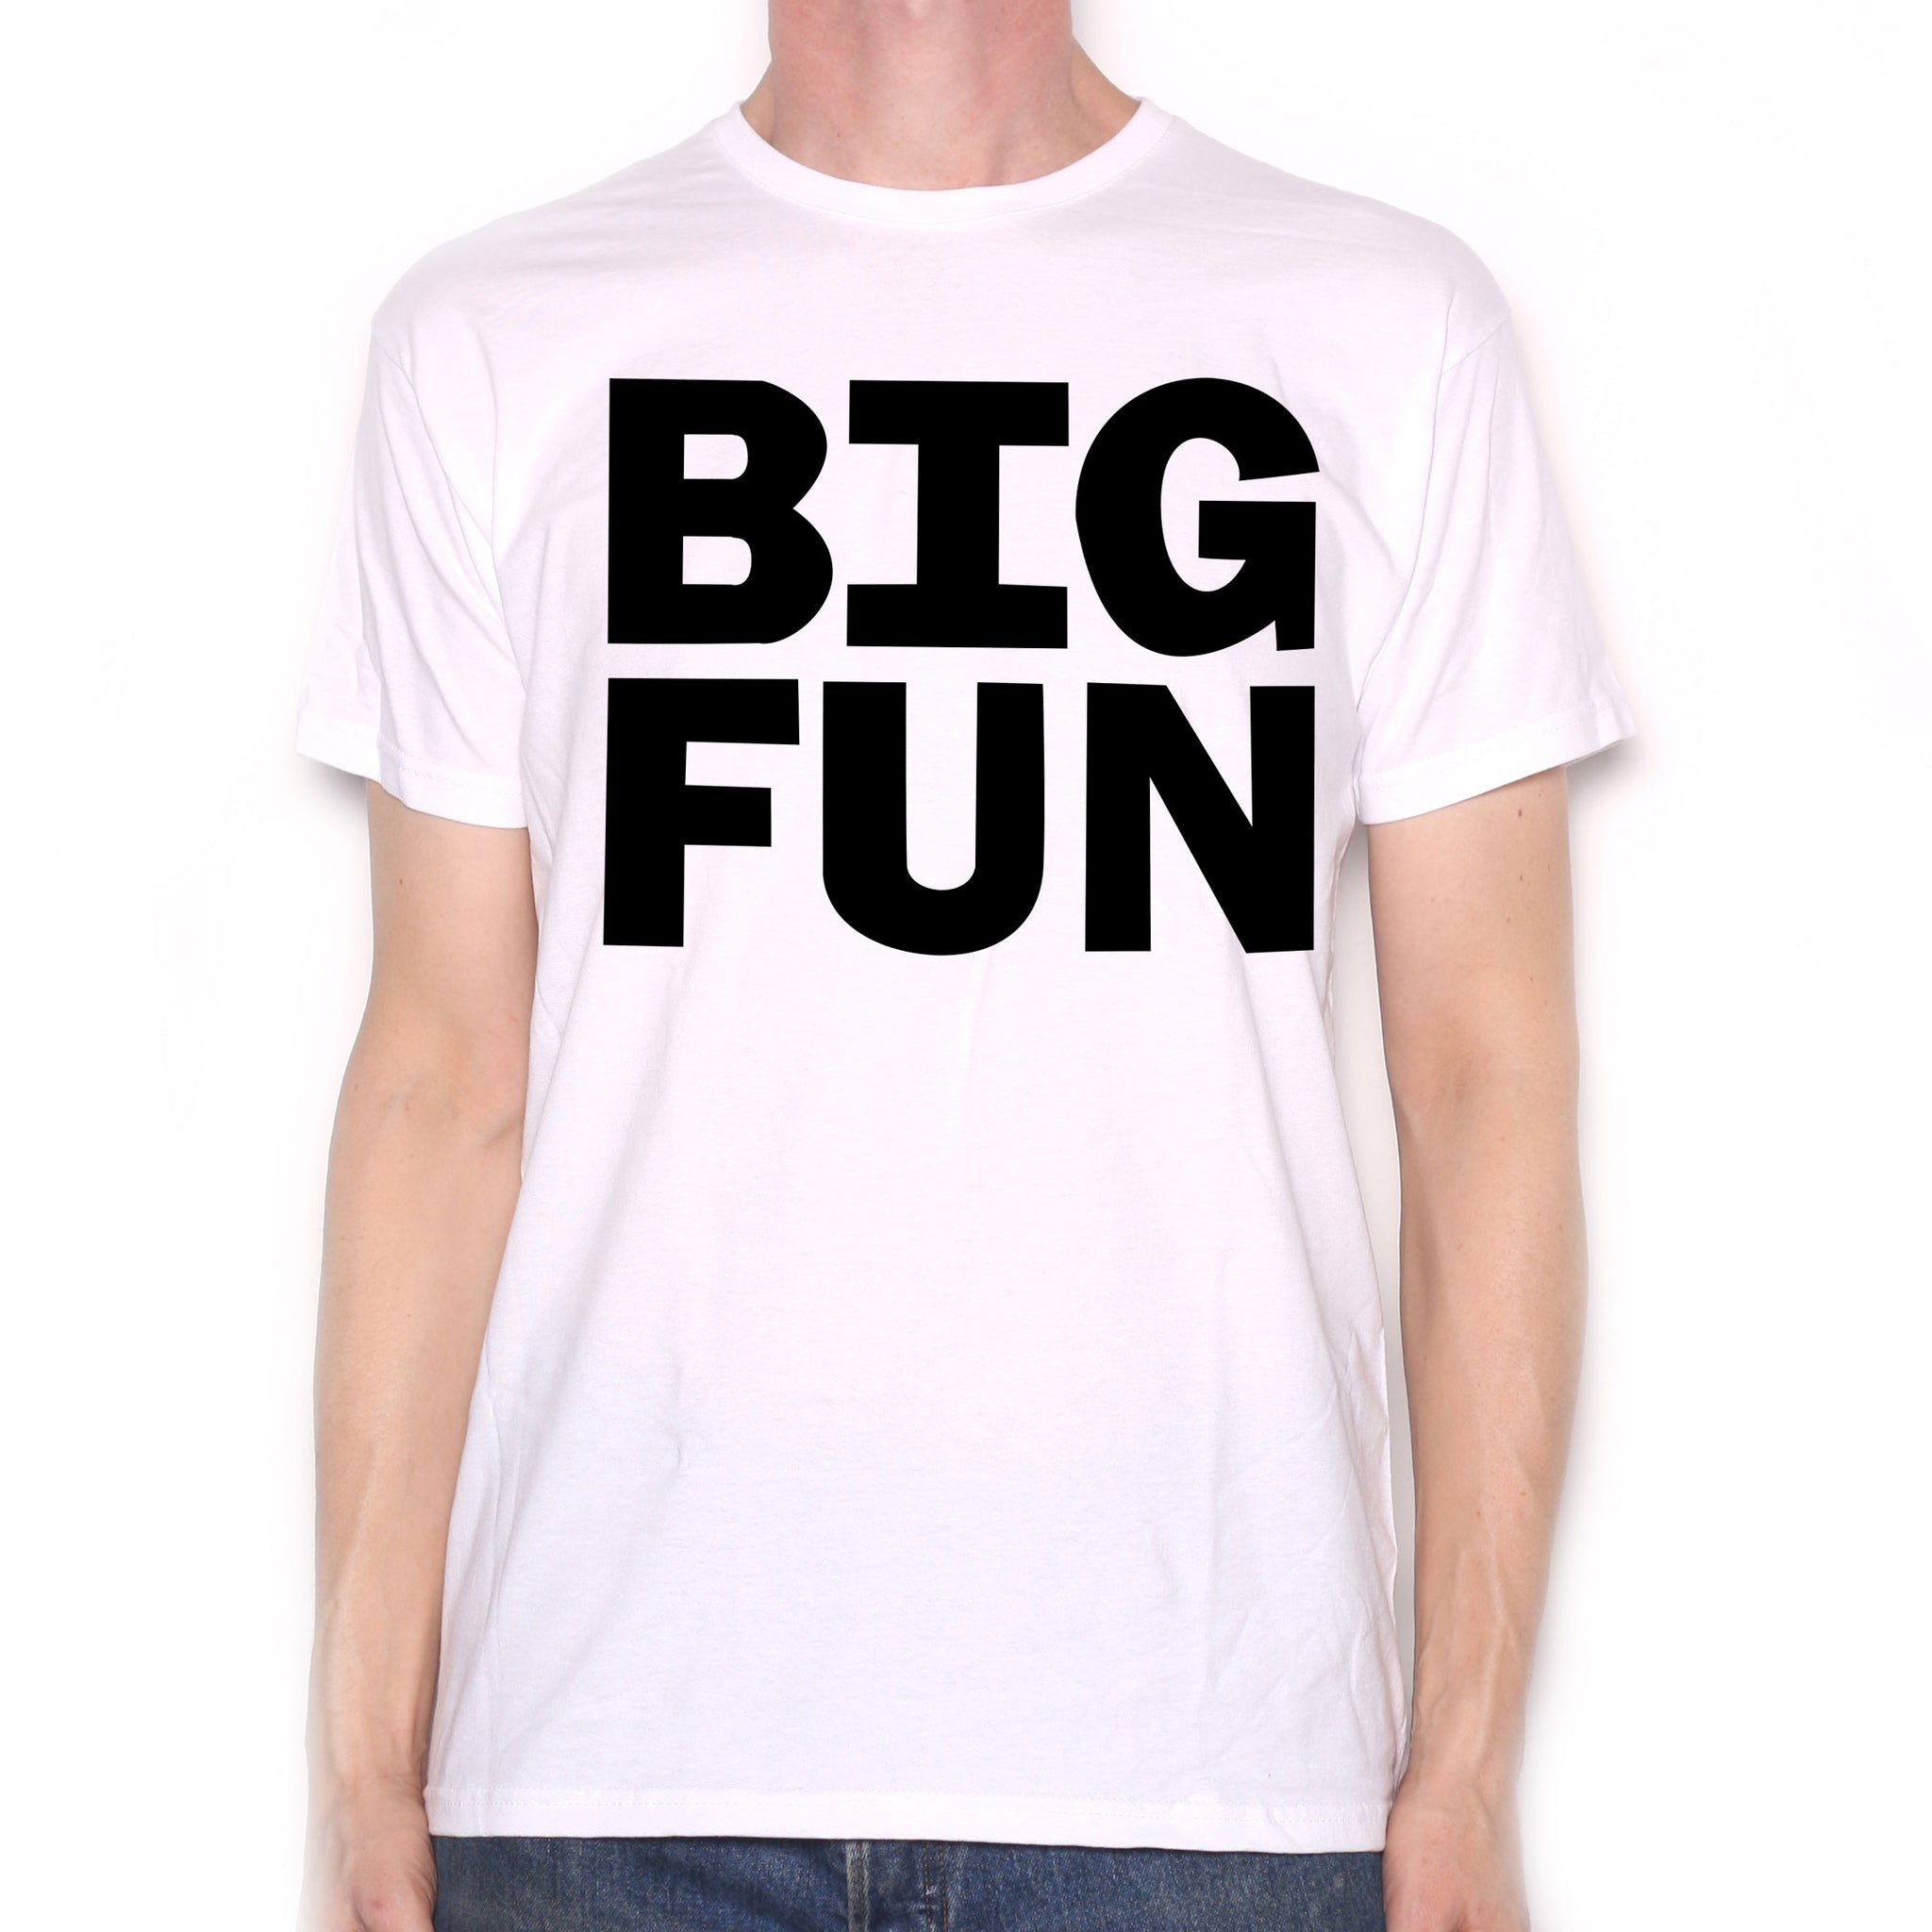 d3534e65c As Seen In Heathers T Shirt - Big Fun | Cult Movie T-Shirts At Old ...